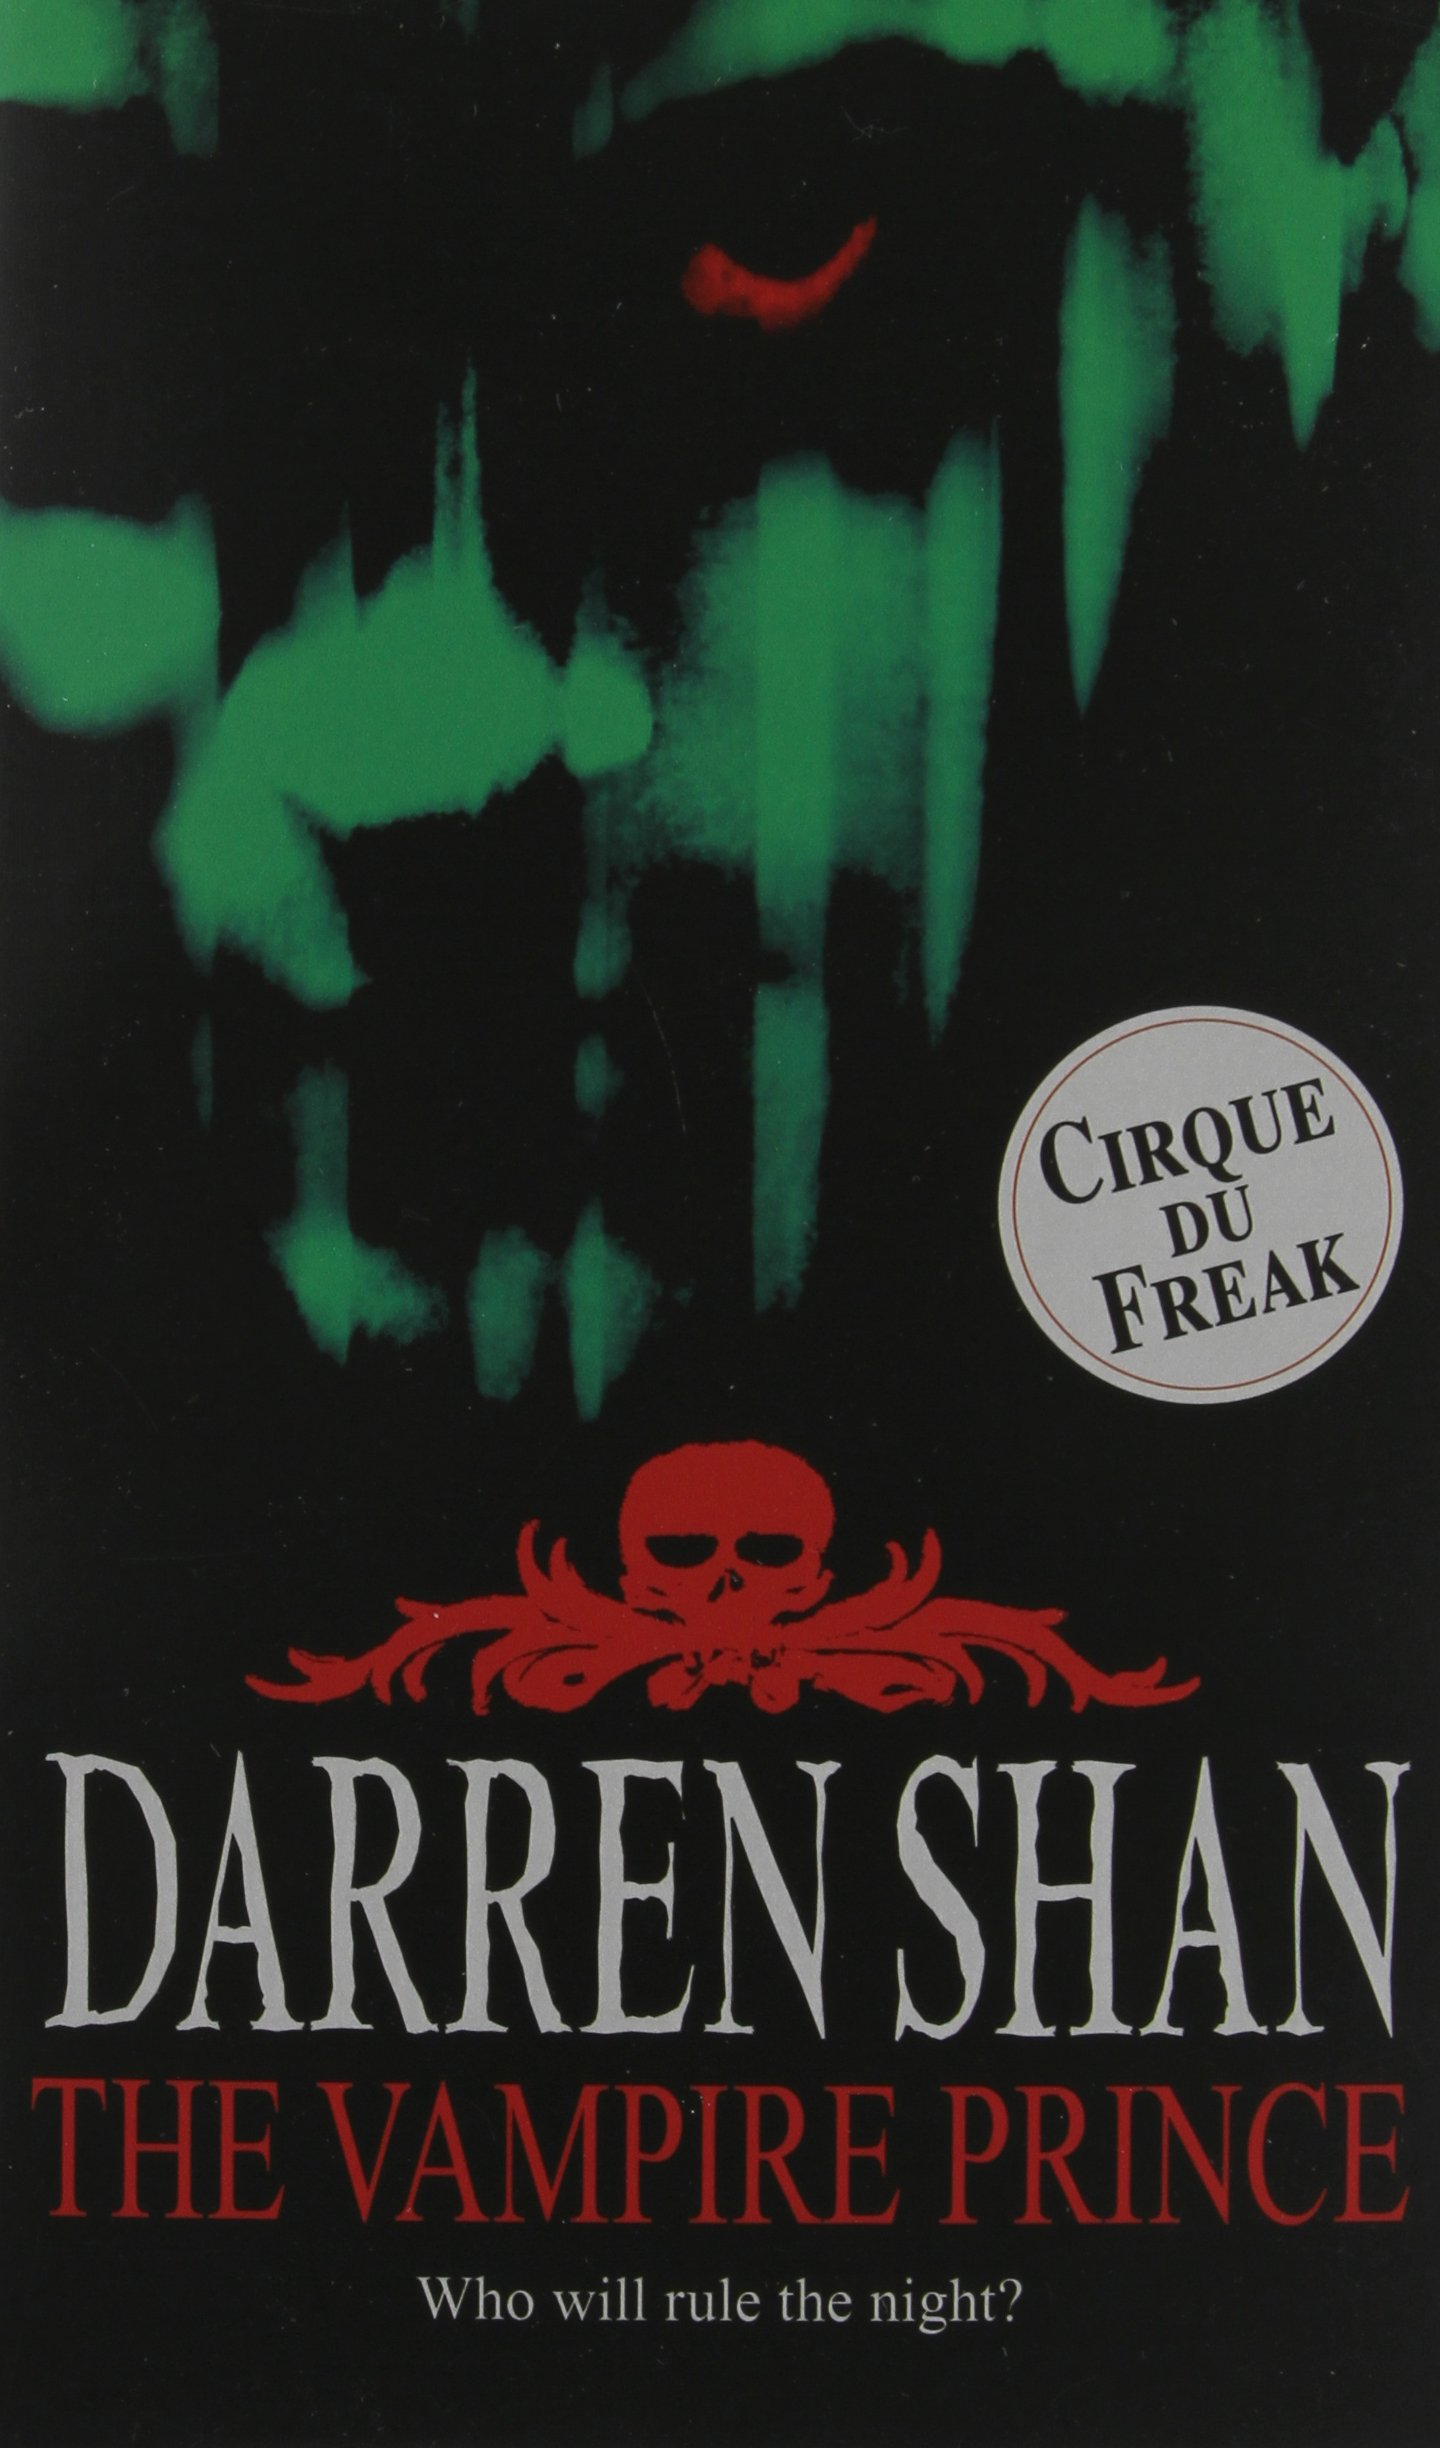 Download The Vampire Prince: The Saga of Darren Shan Book Six ebook